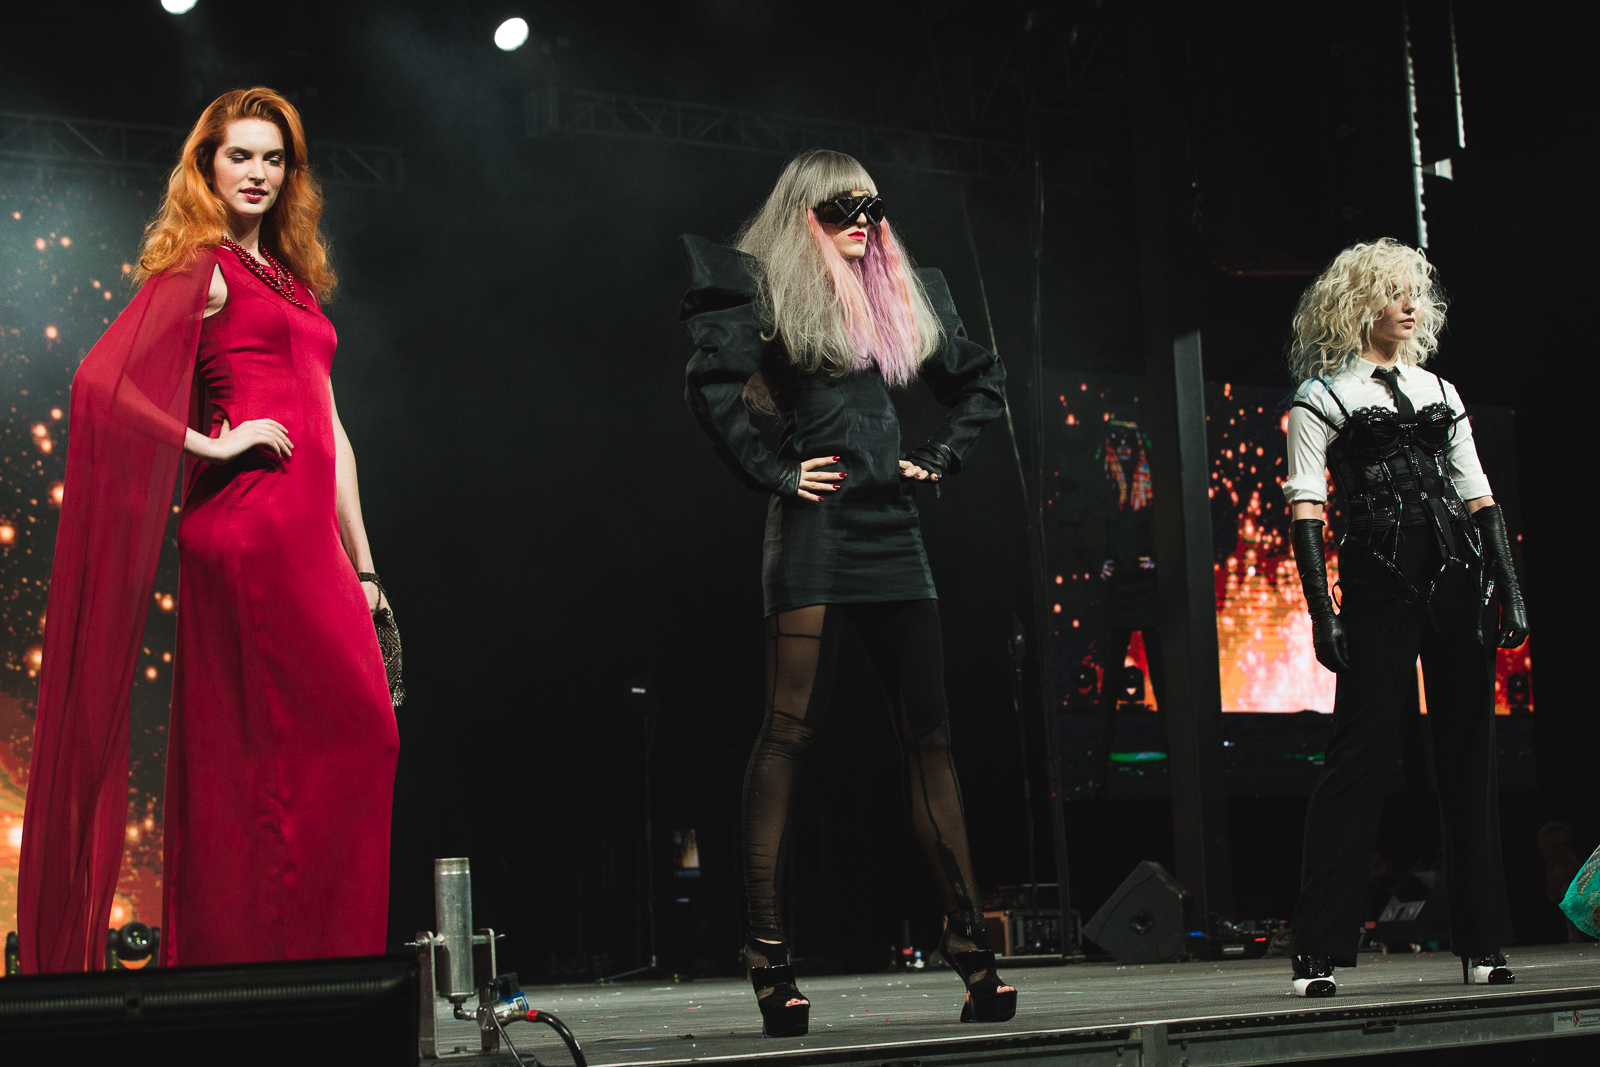 Goldwell shows off their modern color icons with Nicole Kidman, Lady Gaga and Madonna inspired shades.